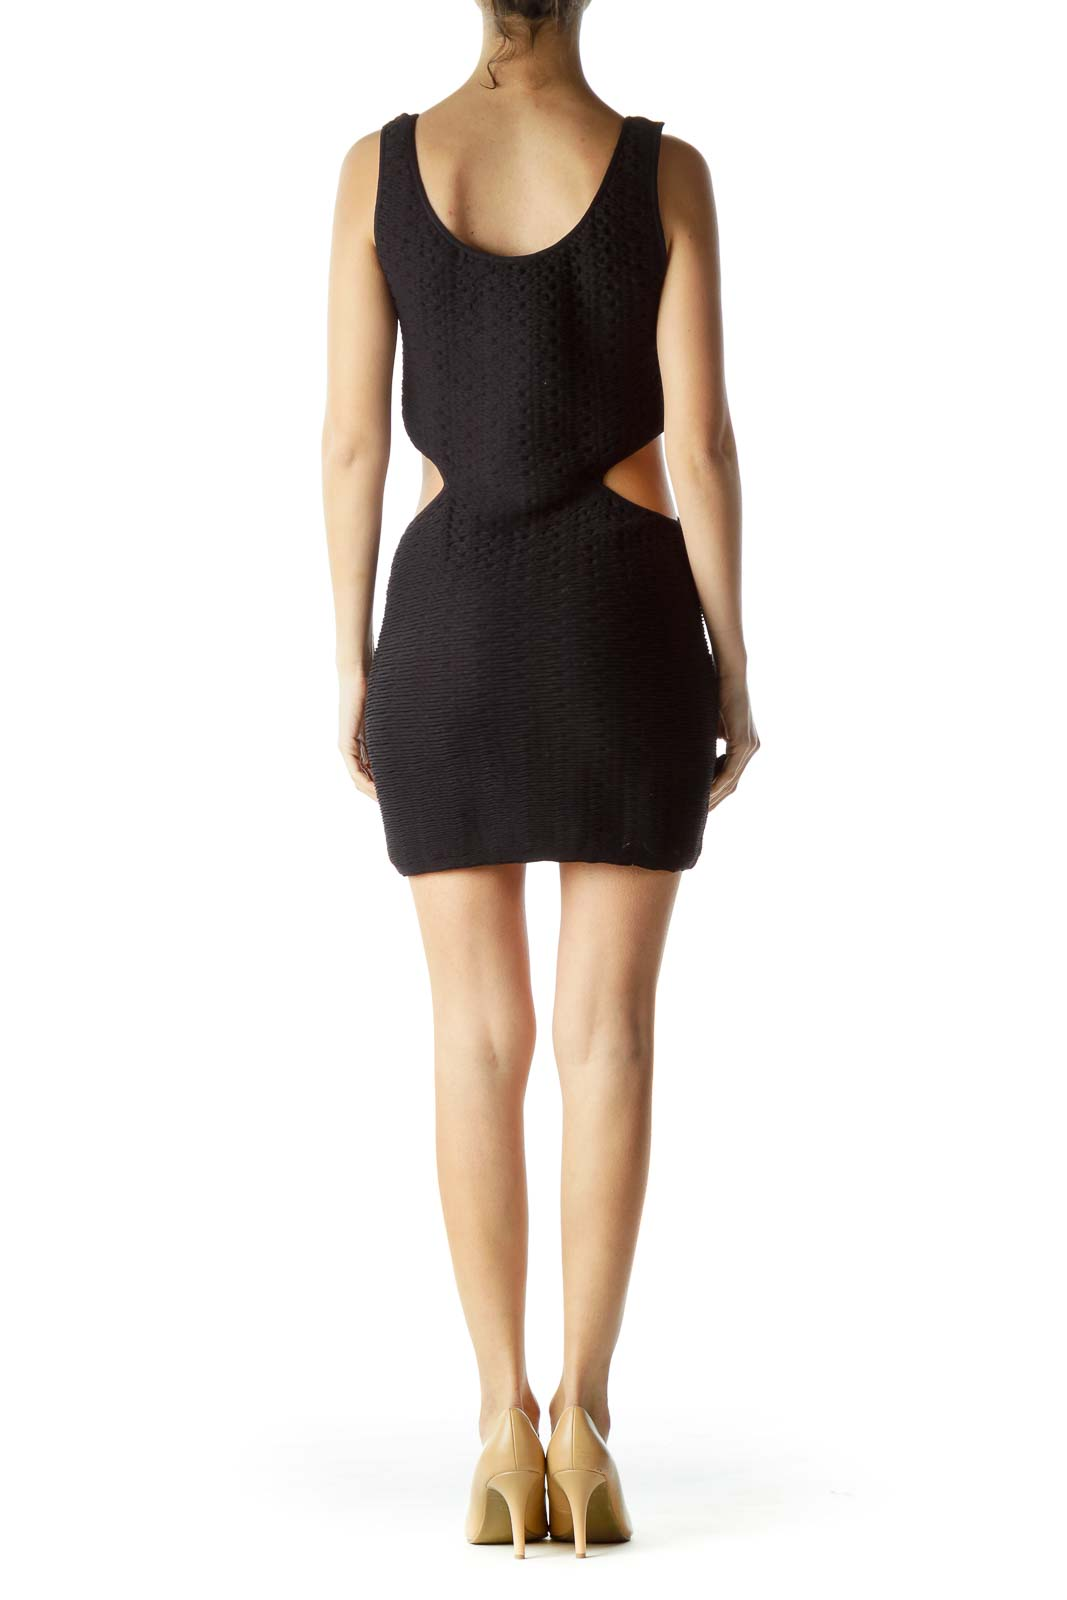 Black Cut-Out Body Con Cocktail Dress